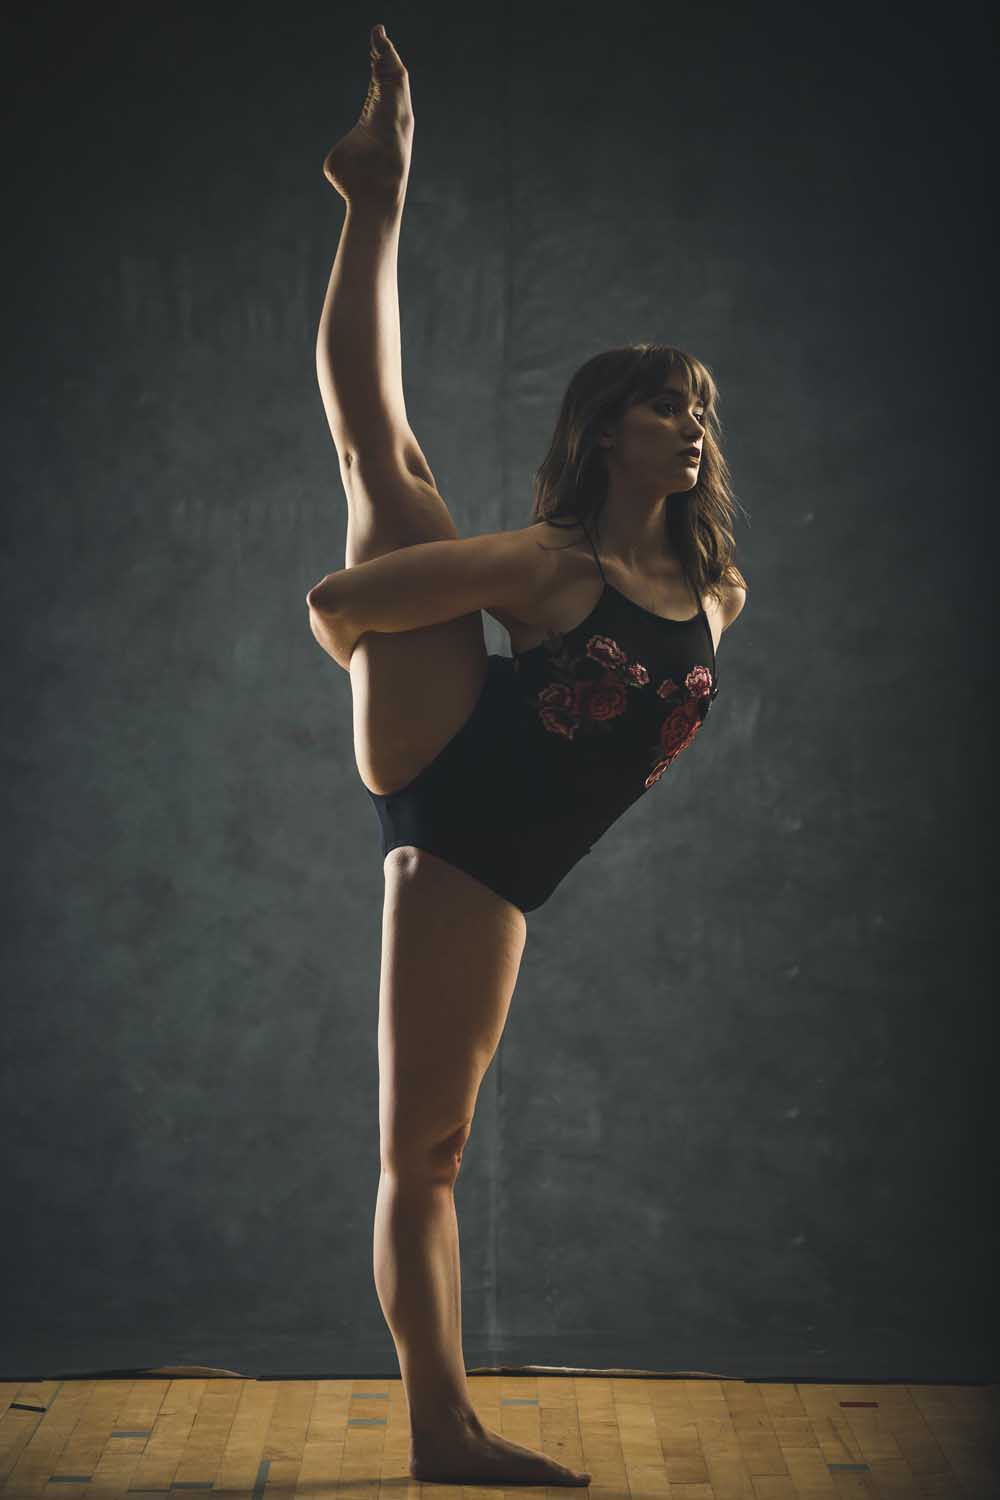 Berks County Dance Photographer